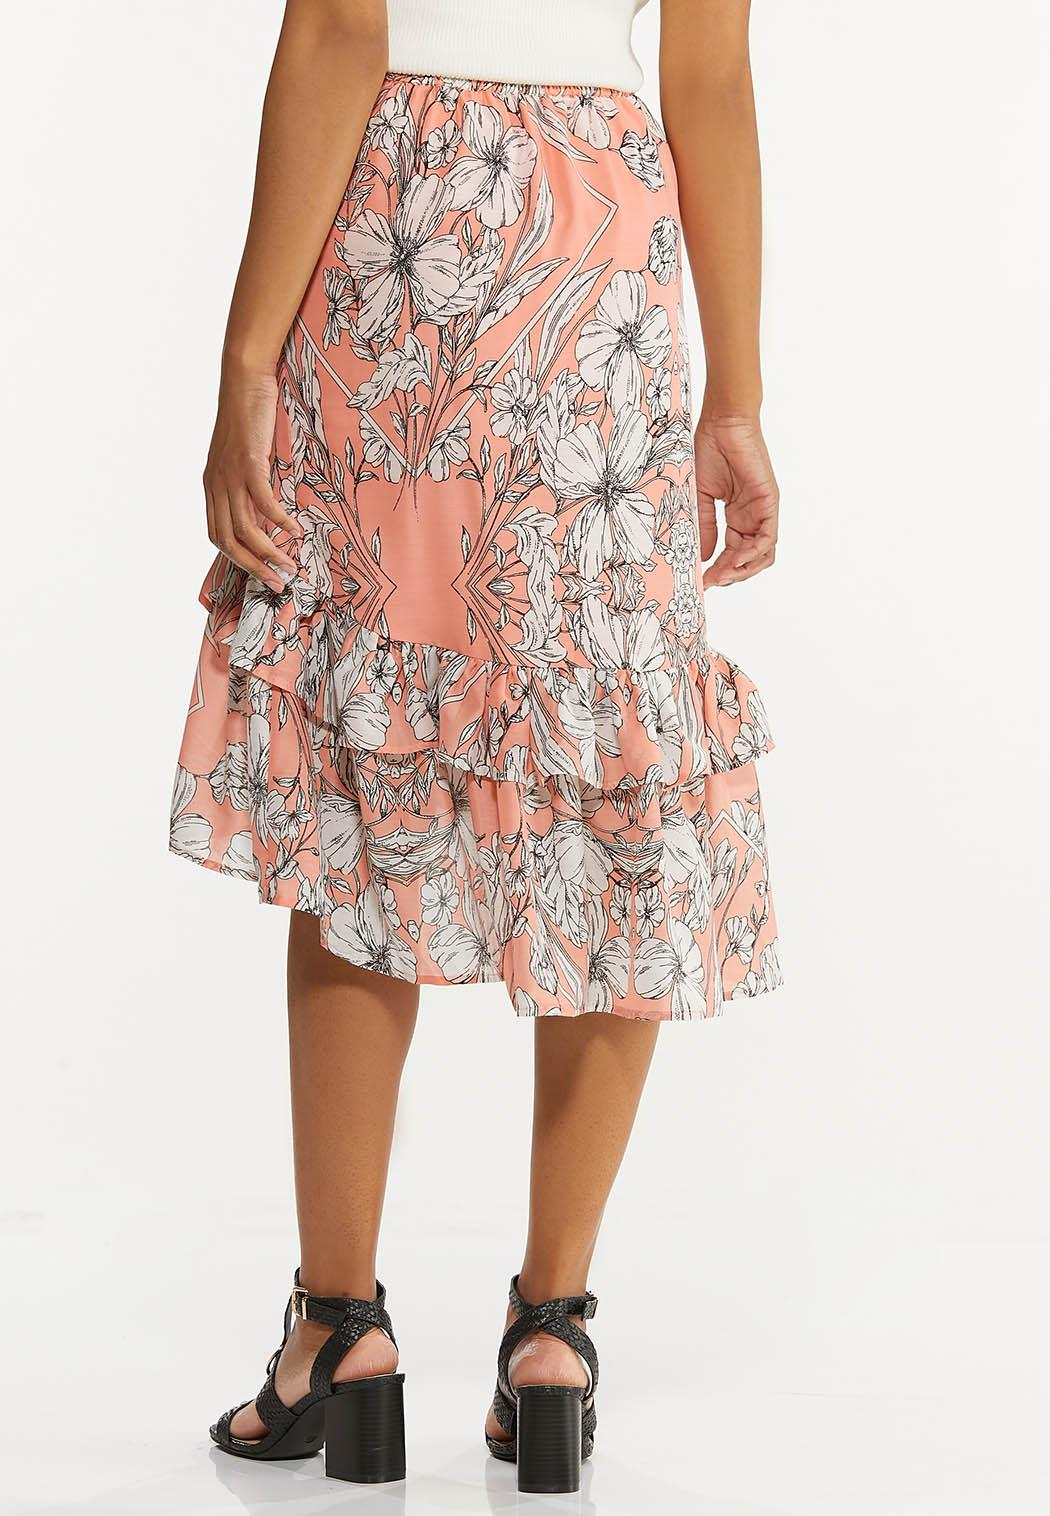 Plus Size Ruffled Sketch Floral Midi Skirt (Item #44592783)